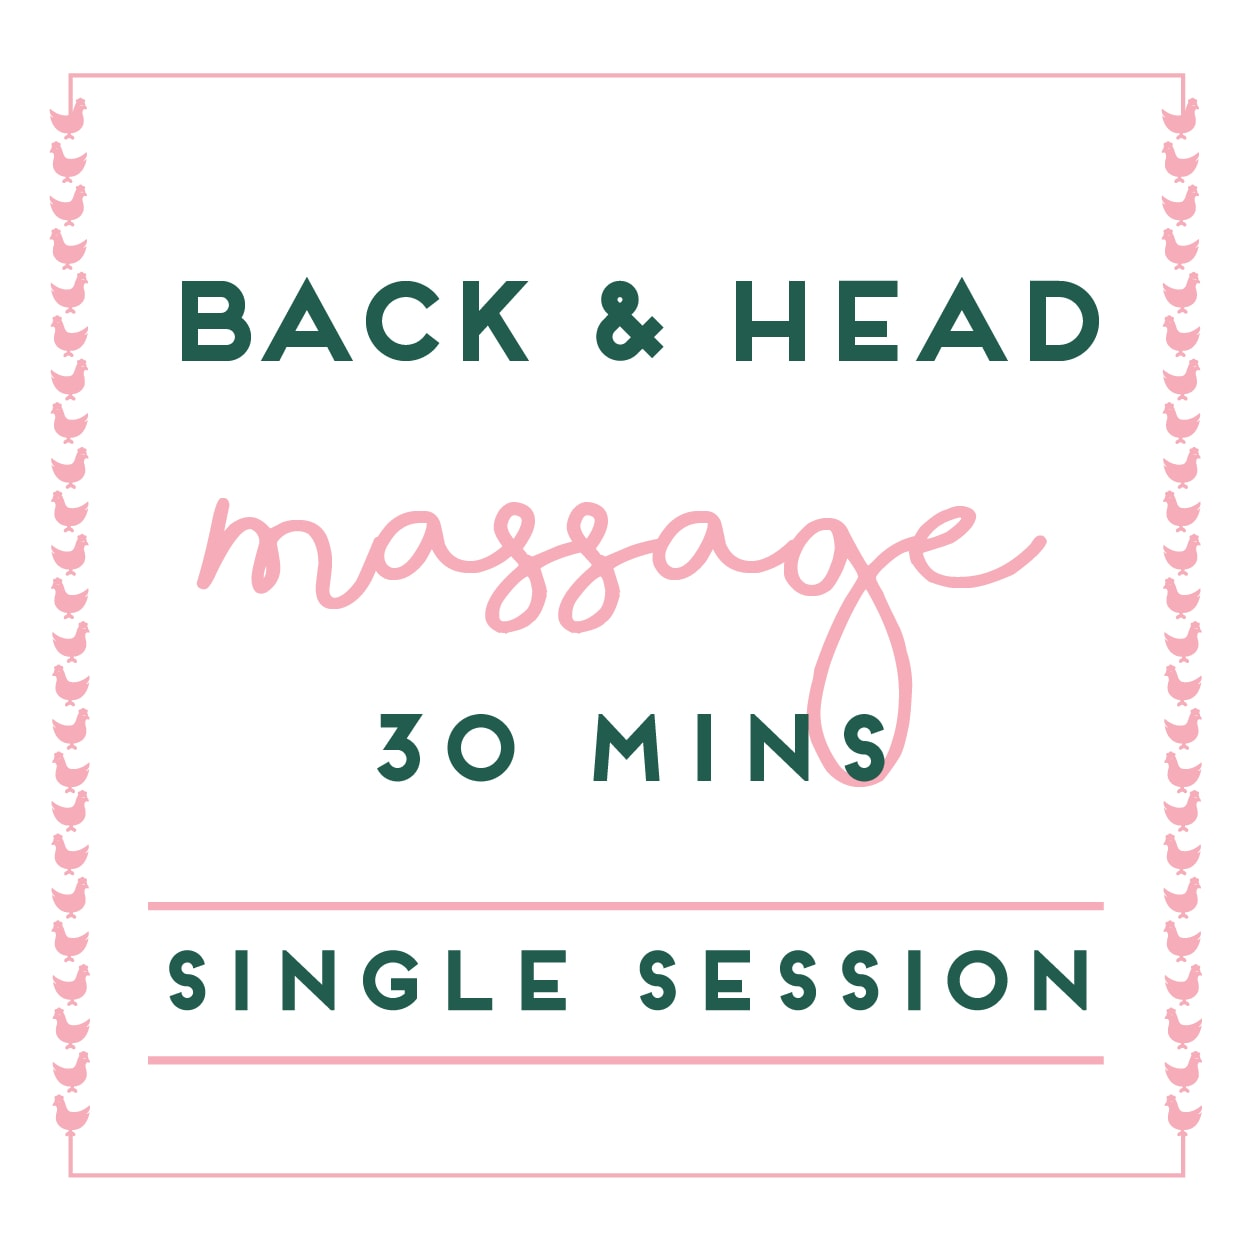 Back & Head Massage